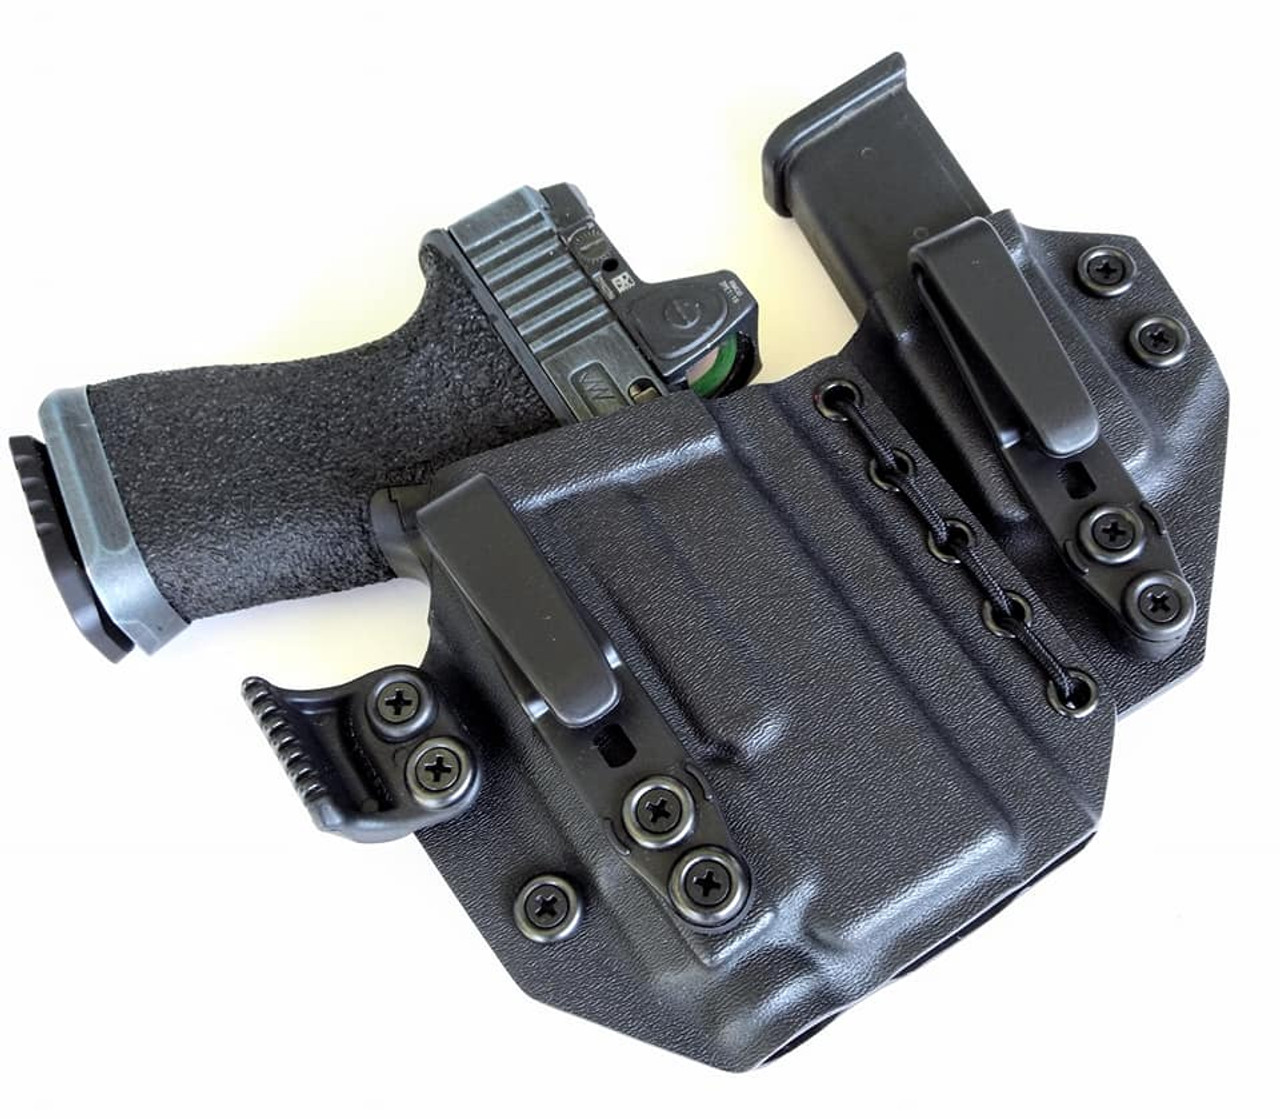 Glock 19 with Streamlight TLR7 Flexible Appendix Carry Rig Holster